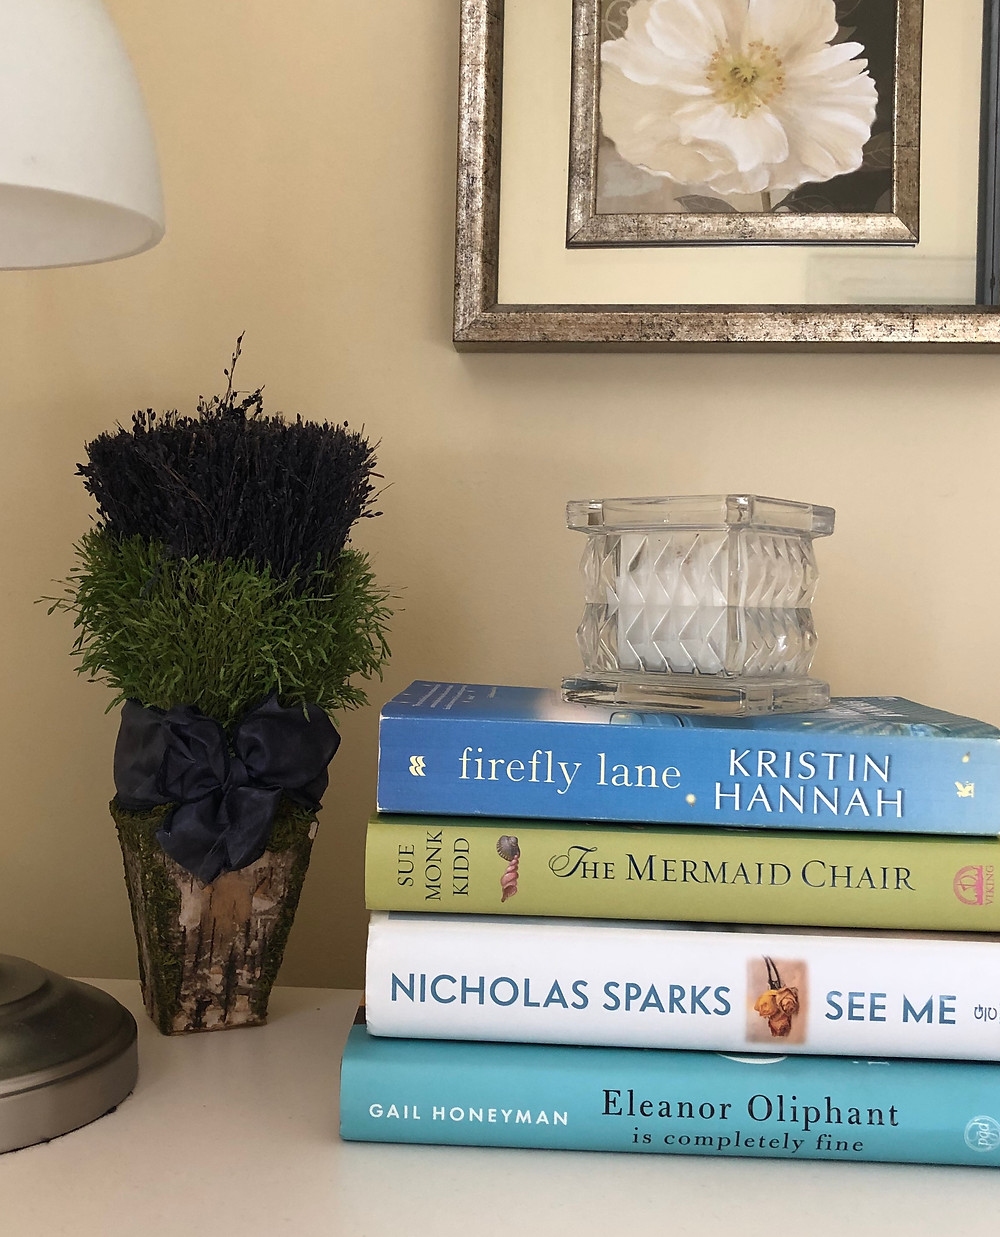 Set of books on a nightstand